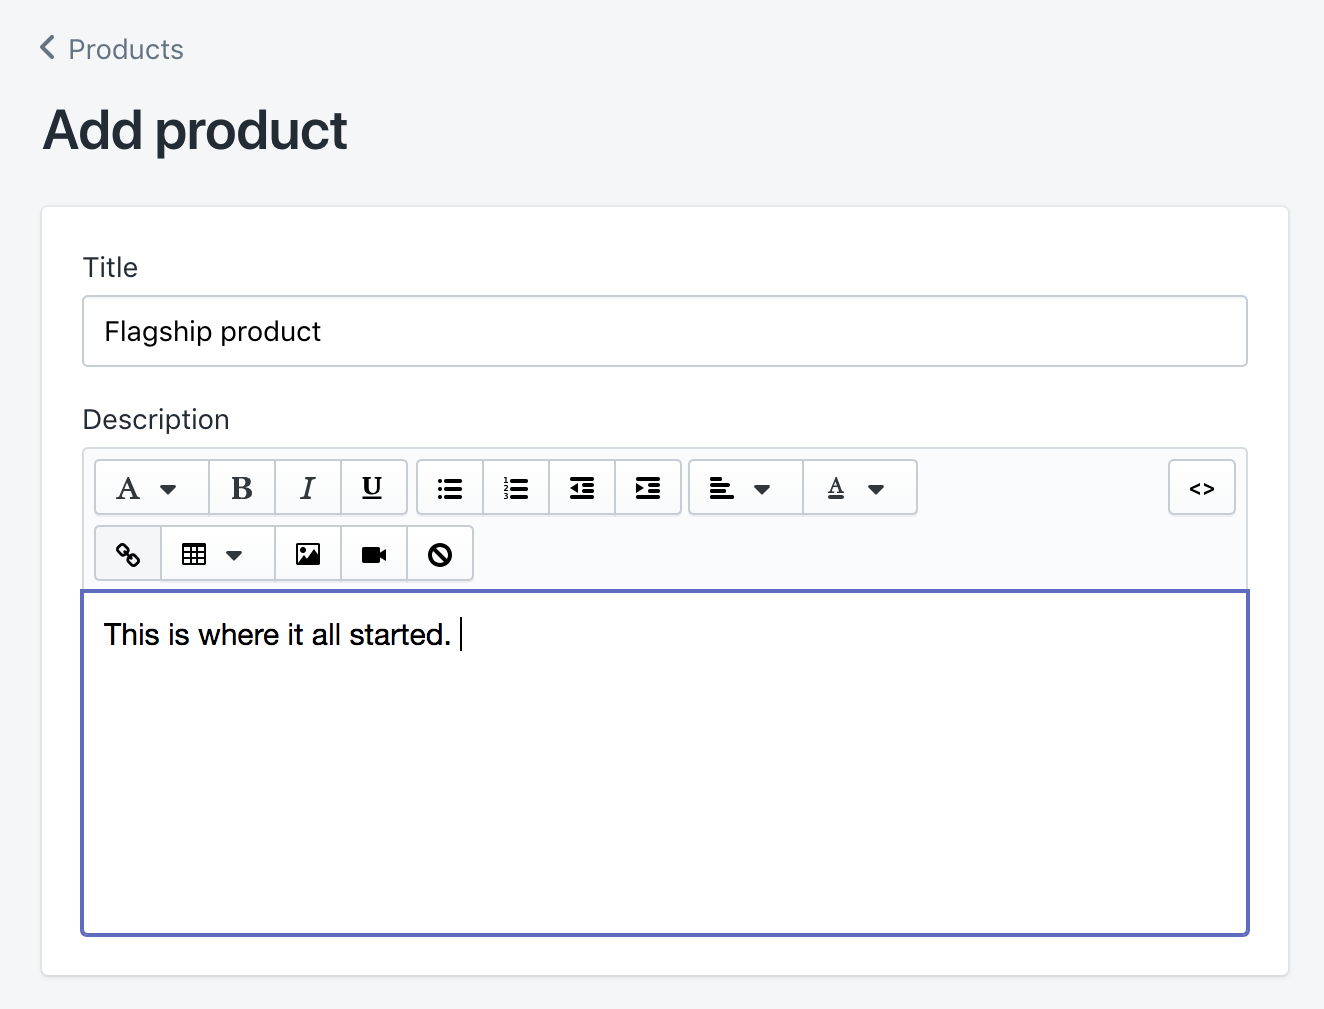 Add product with title and description fields